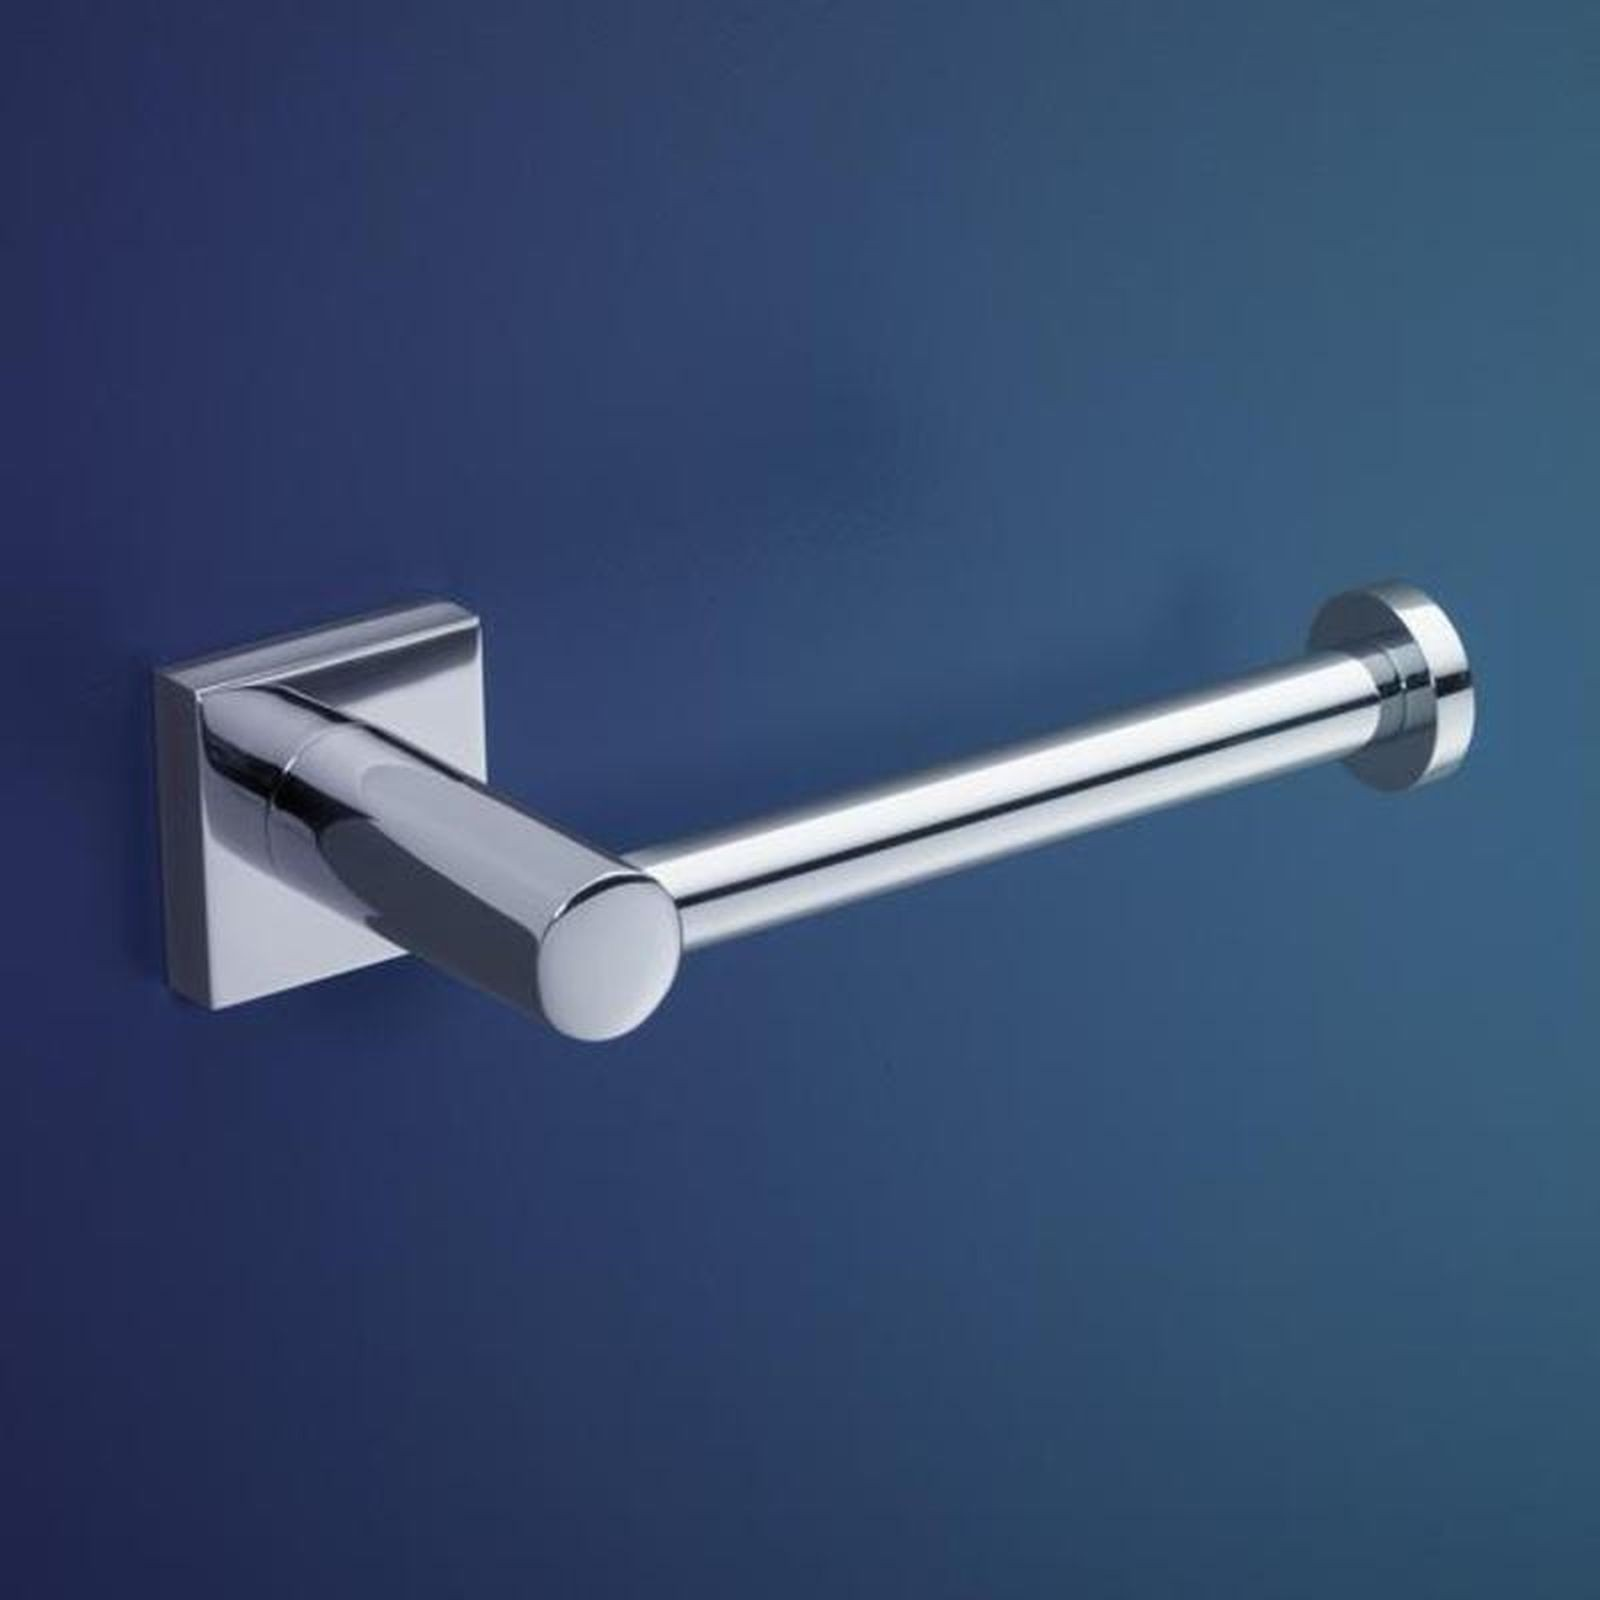 Dorf bathroom accessories - Download Cad Files For Dorf Enix Toilet Roll Holder